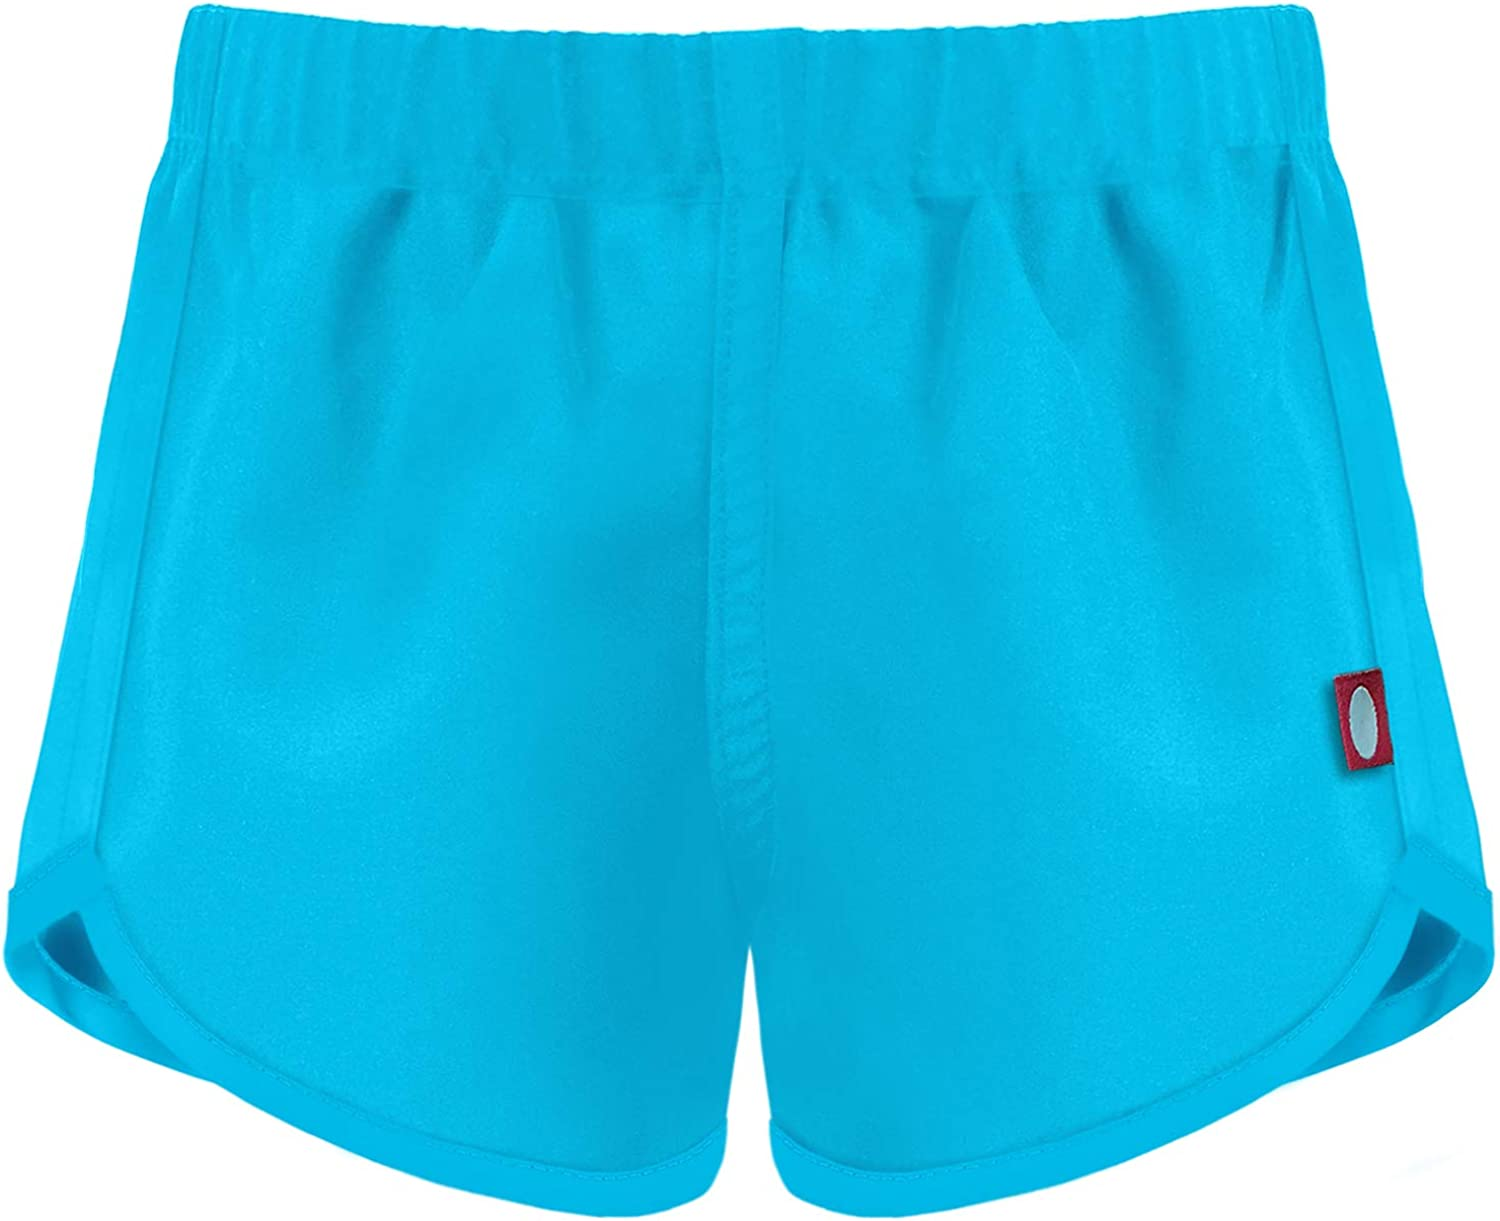 Made in USA City Threads Girls Slim Fit Swimming Coverup Shorts for Multi Sports Camps Beach Swim